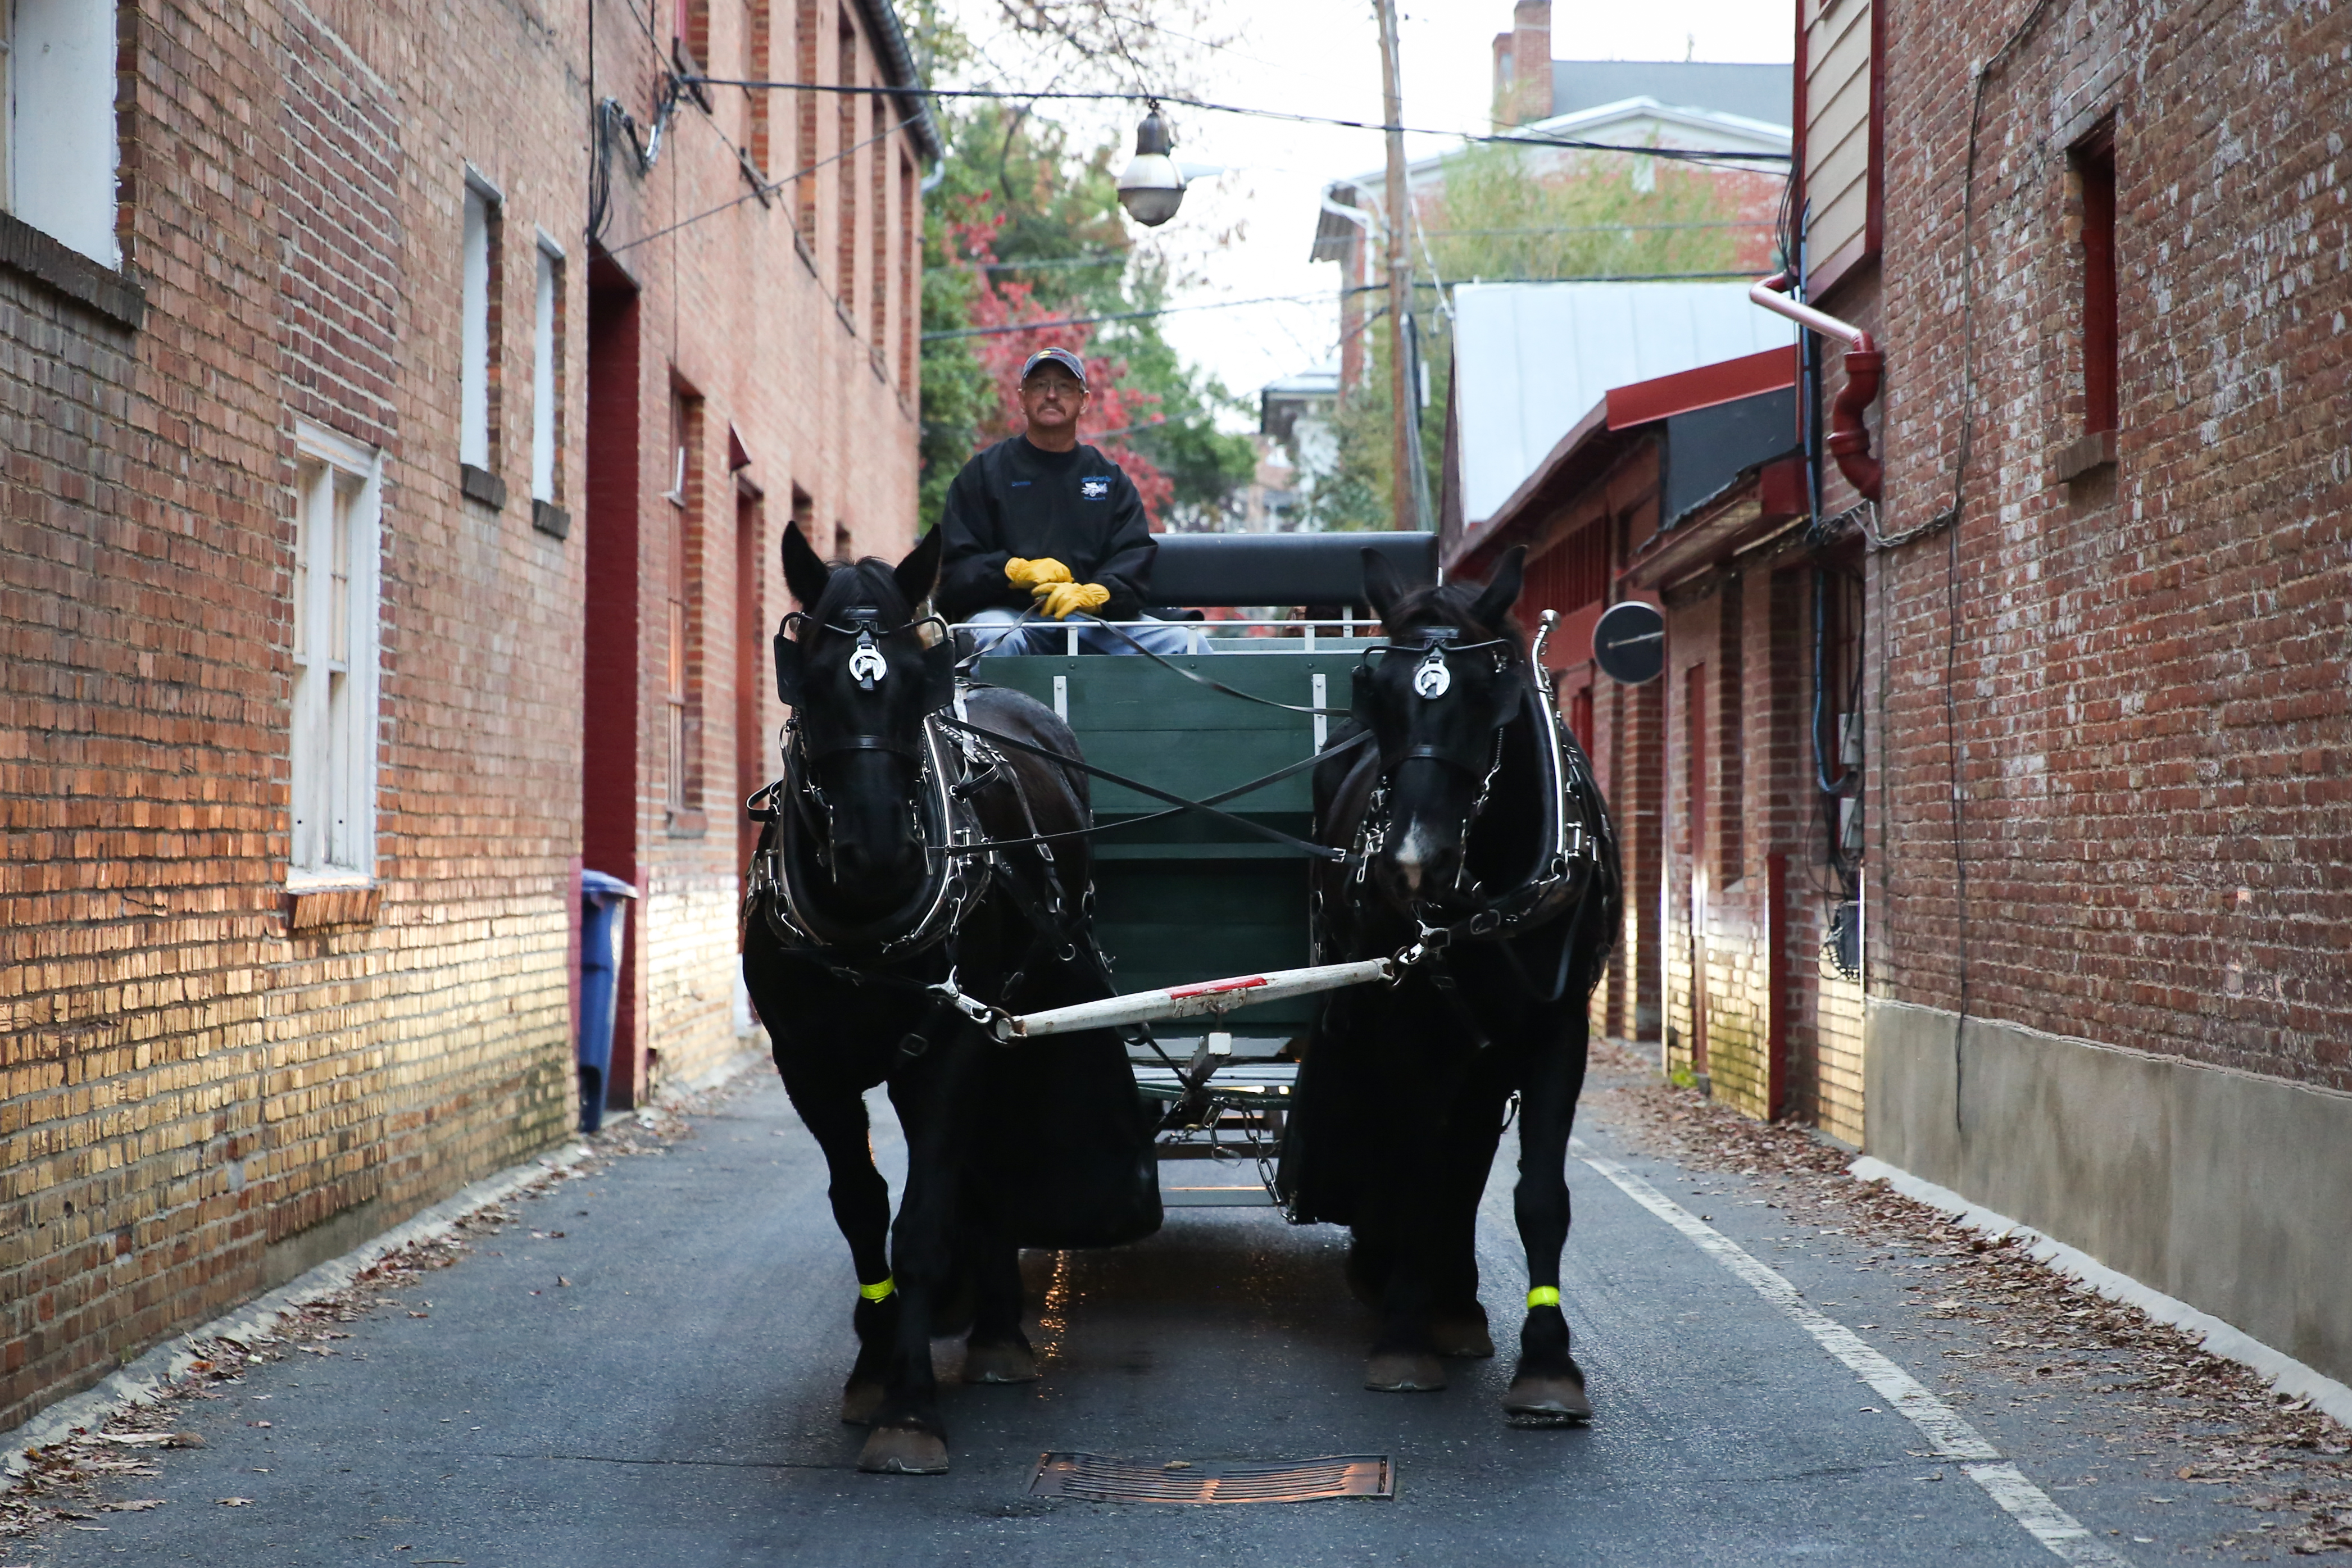 Carriage rides give you a chance to get cozy with your loved ones while you enjoy the festive decorations around Downtown Frederick, and they're a big hit with kids.{ } (Image: Amanda Andrade-Rhoades/ DC Refined)